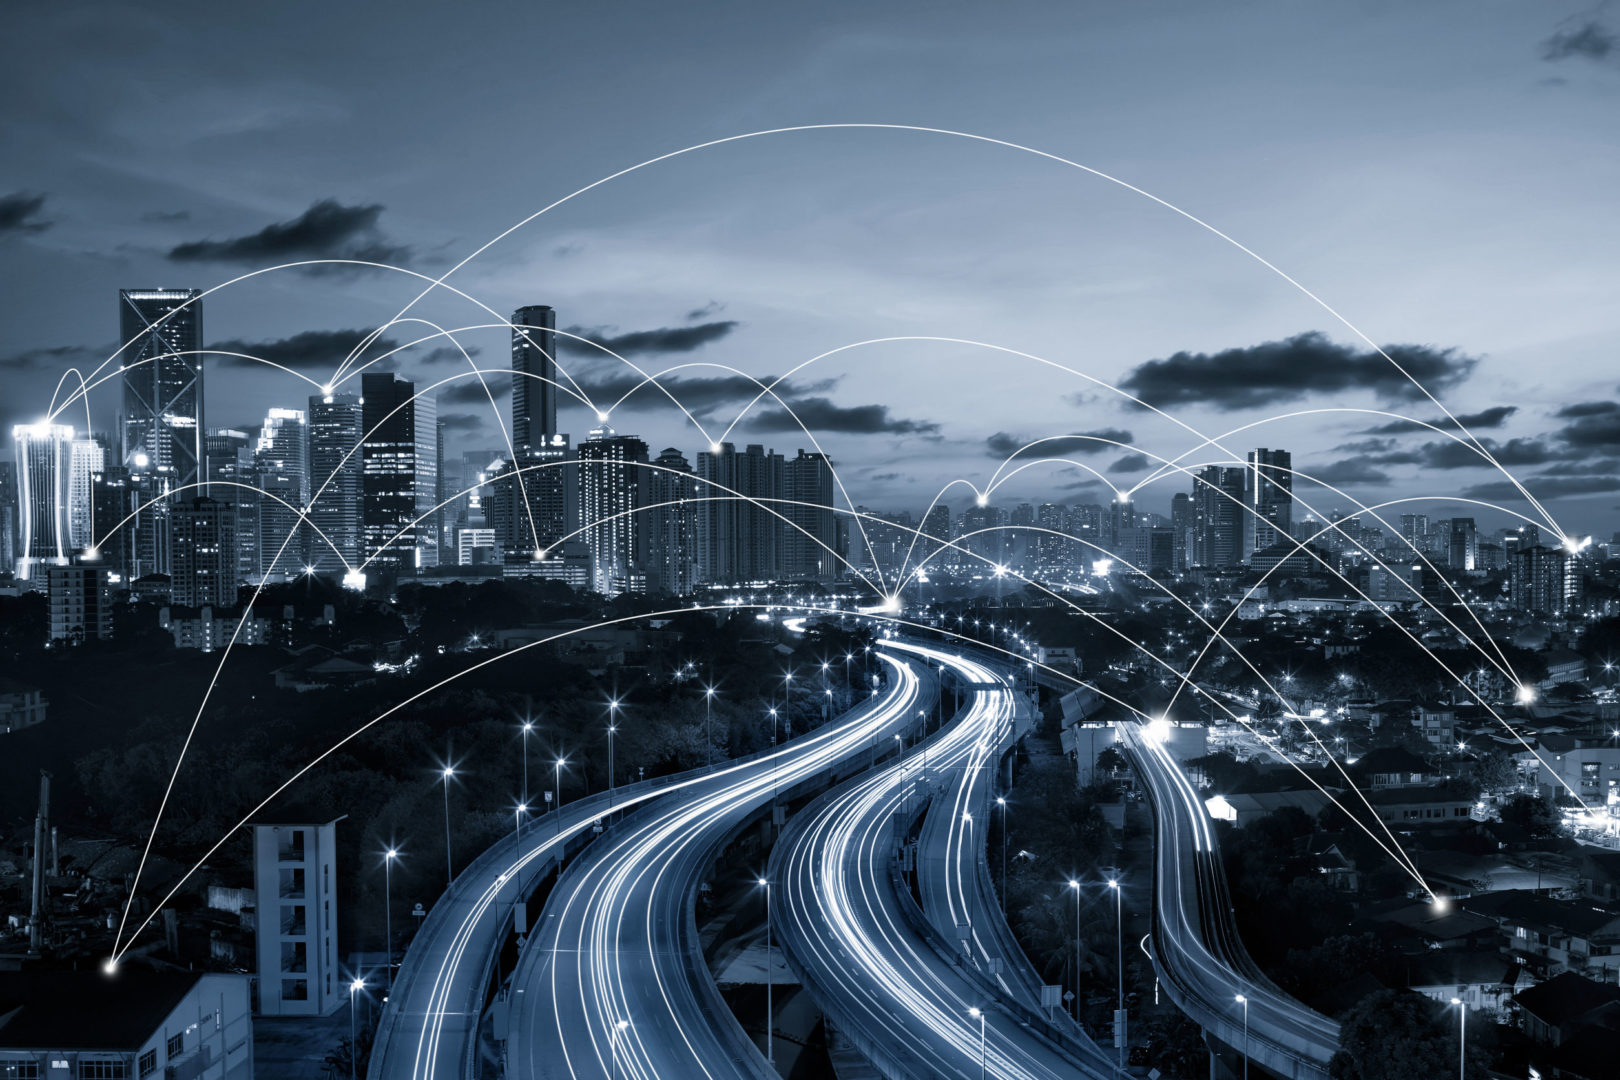 Time for Network Analytics to bring Measurable Business Value